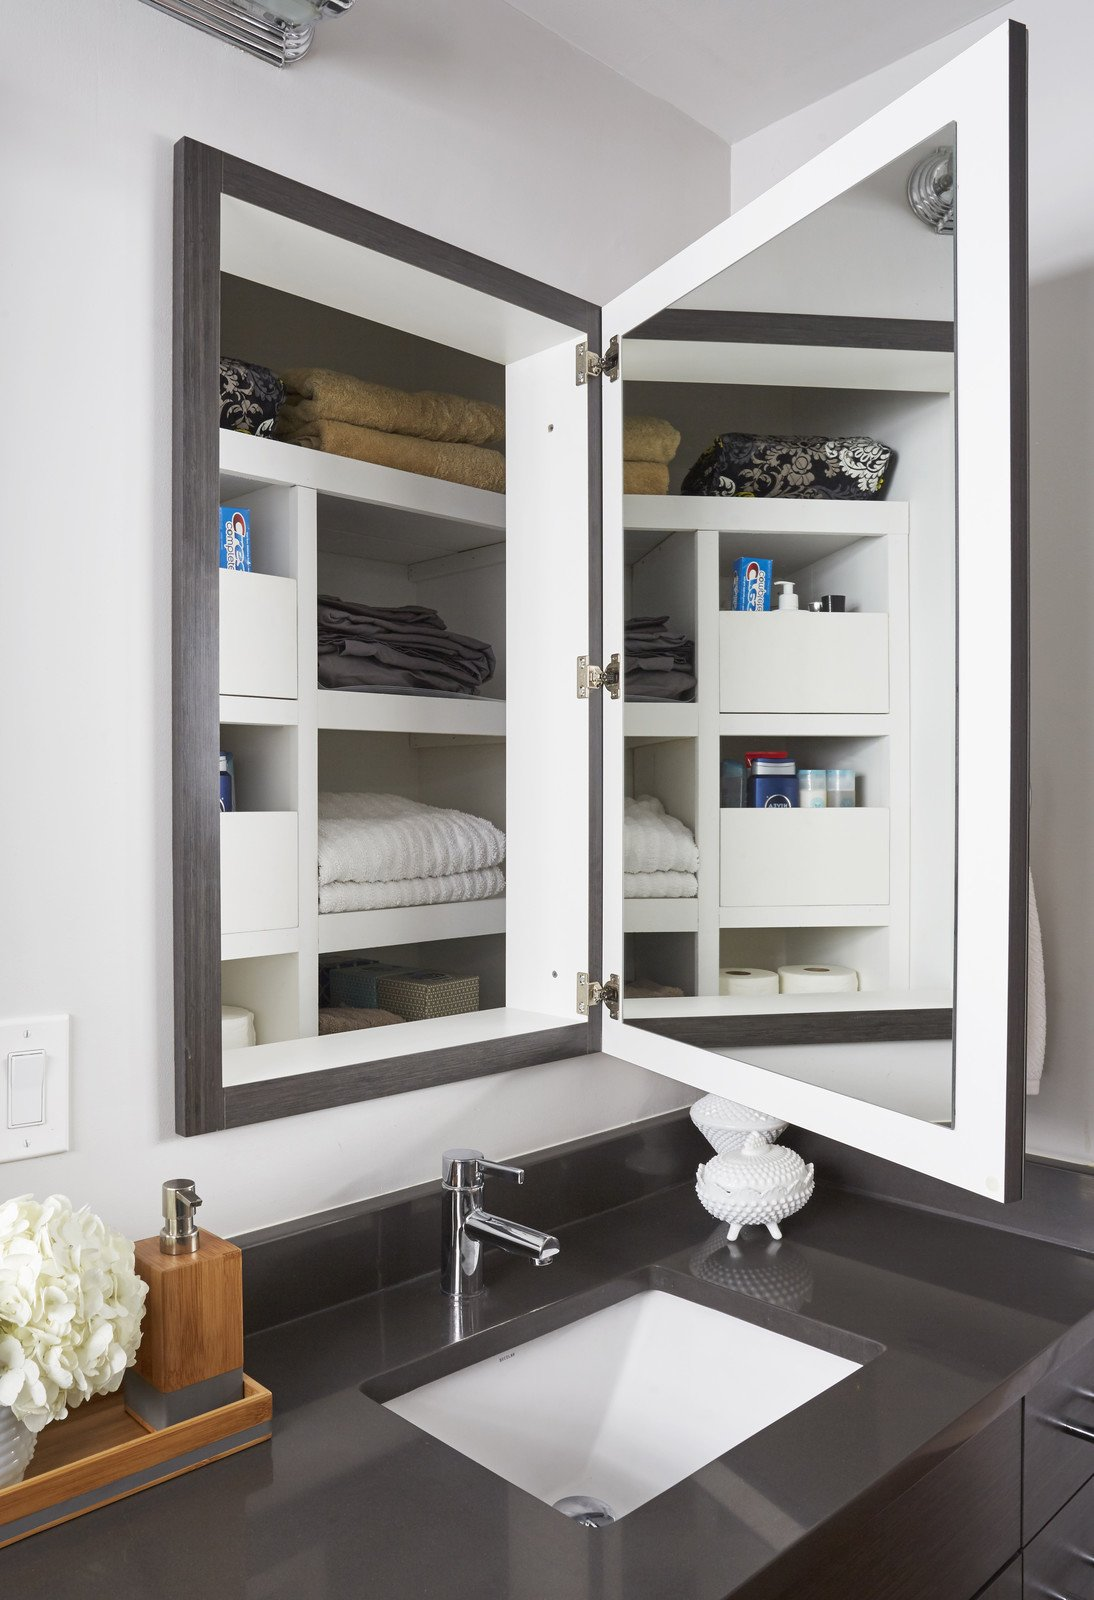 Storage Room and Cabinet Storage Type Photo caption: This renovation preserved the depth behind the medicine cabinets for linen storage.  Photo 10 of 10 in 10 Clever Ways to Sneak Storage Into Your Renovation